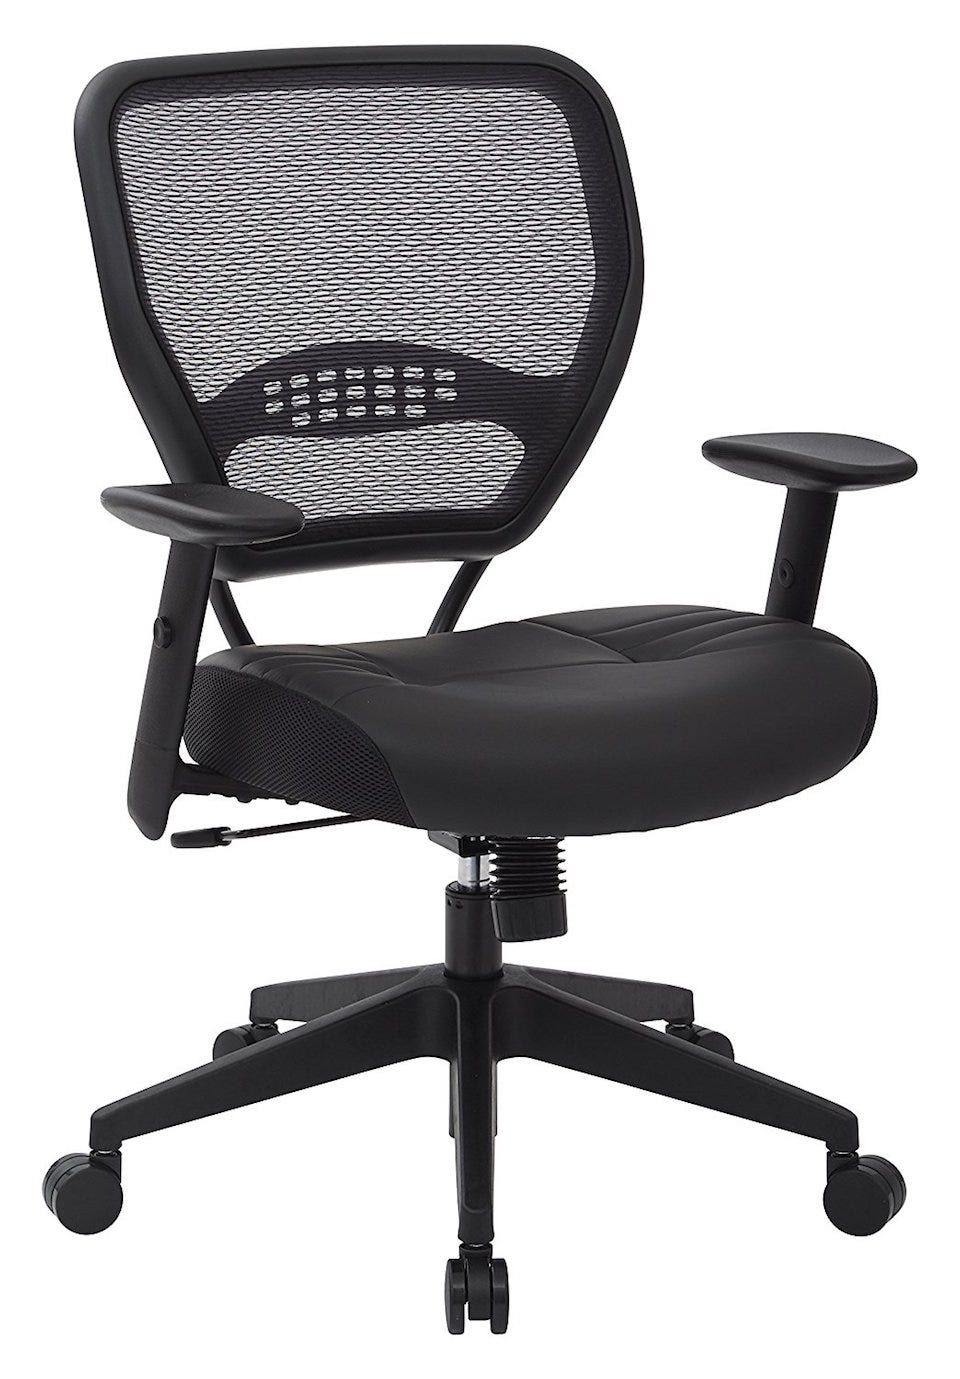 The Space Seating Professional Airgrid Dark Back And Padded Black Eco Leather Seat Might Look More Lightweight Than Other Chairs Here But That Just